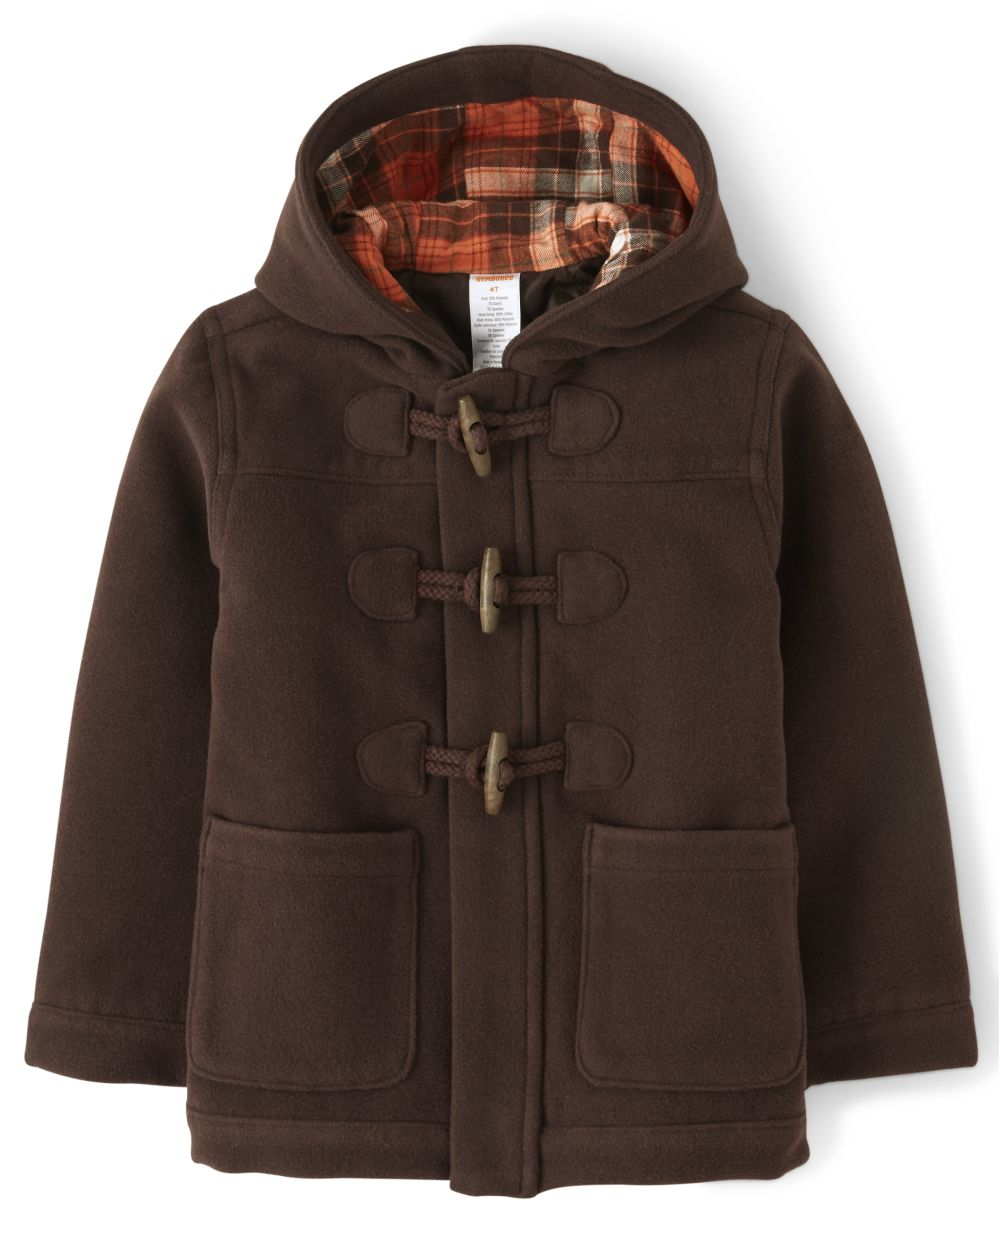 Boys Toggle Jacket - Harvest